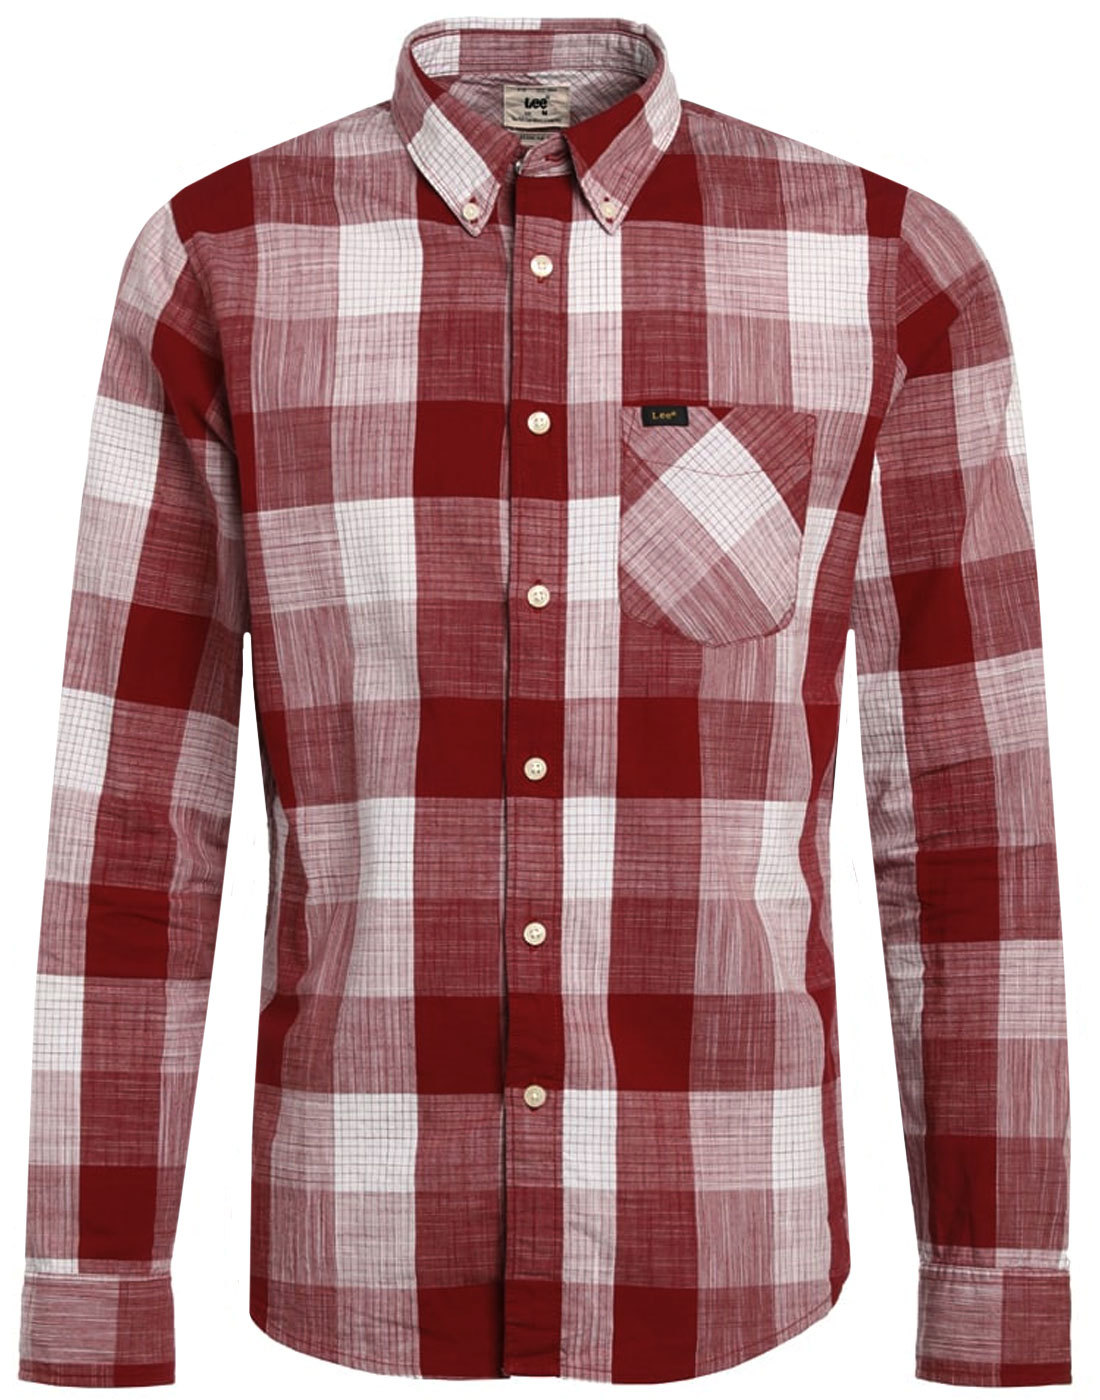 LEE JEANS Retro Mod Check Button Down Shirt (RED)